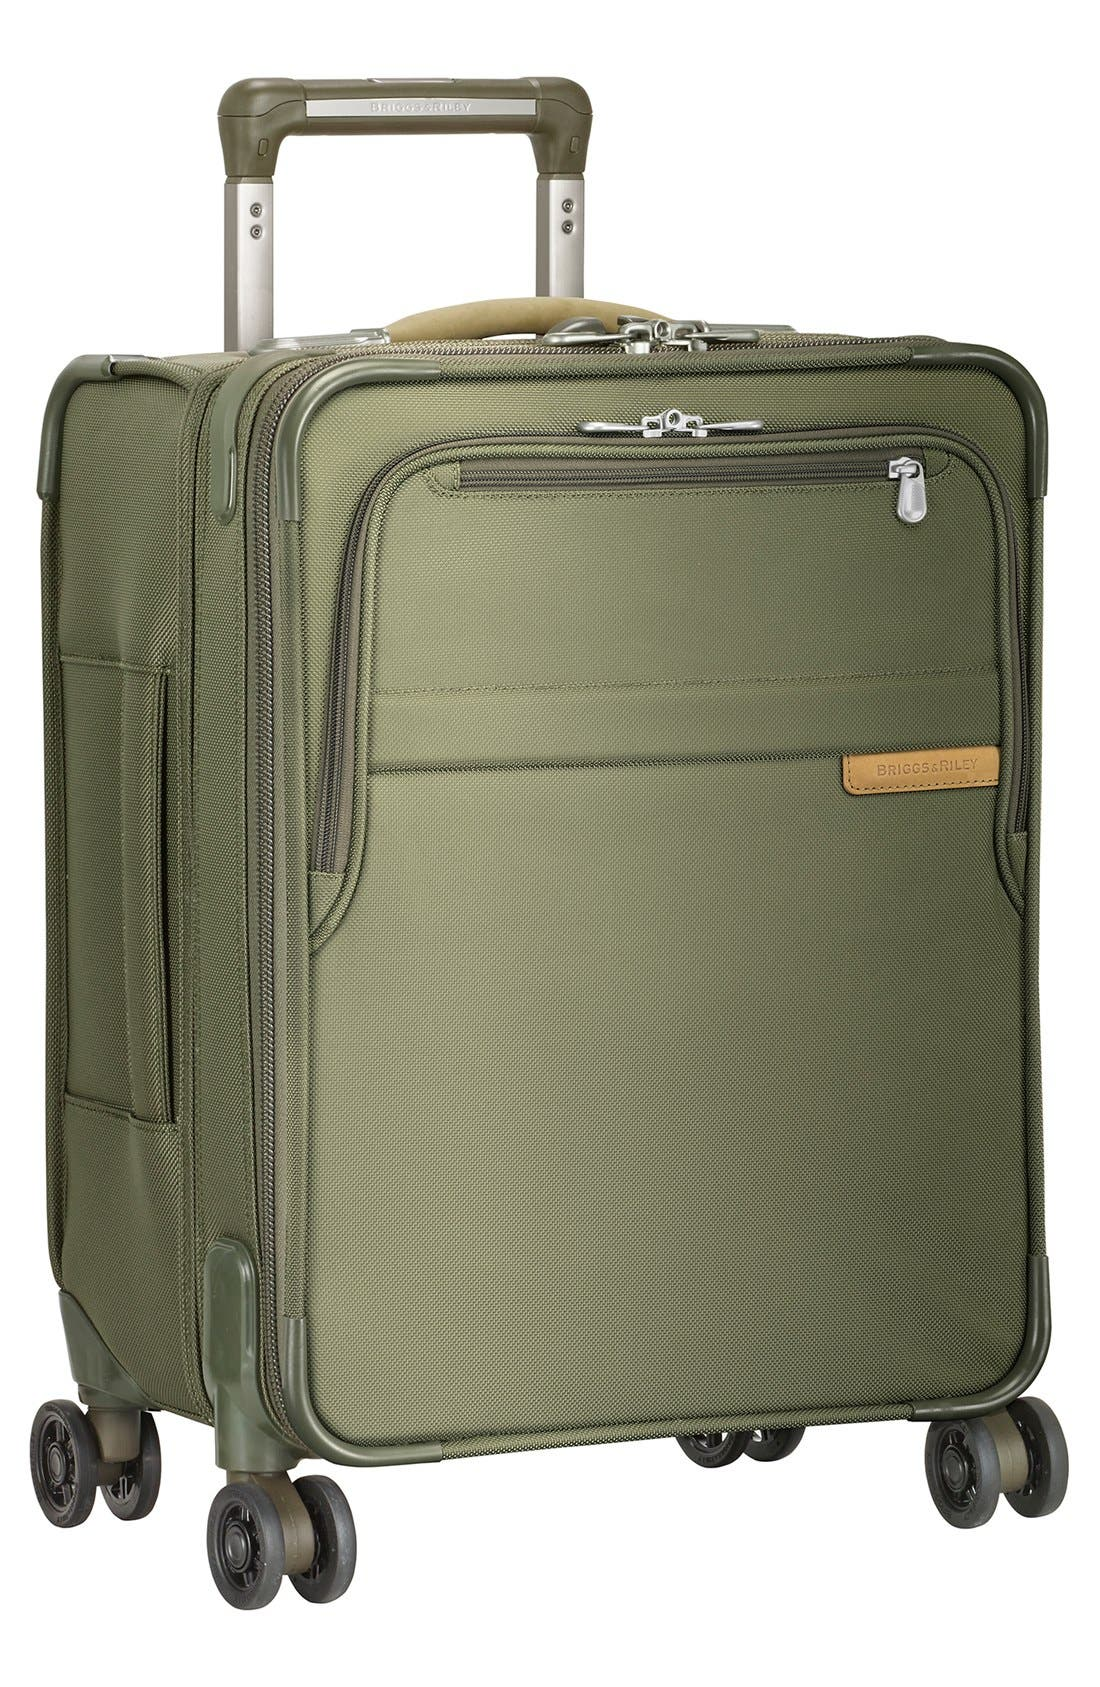 BRIGGS & RILEY Baseline - Commuter Expandable Rolling Carry-On